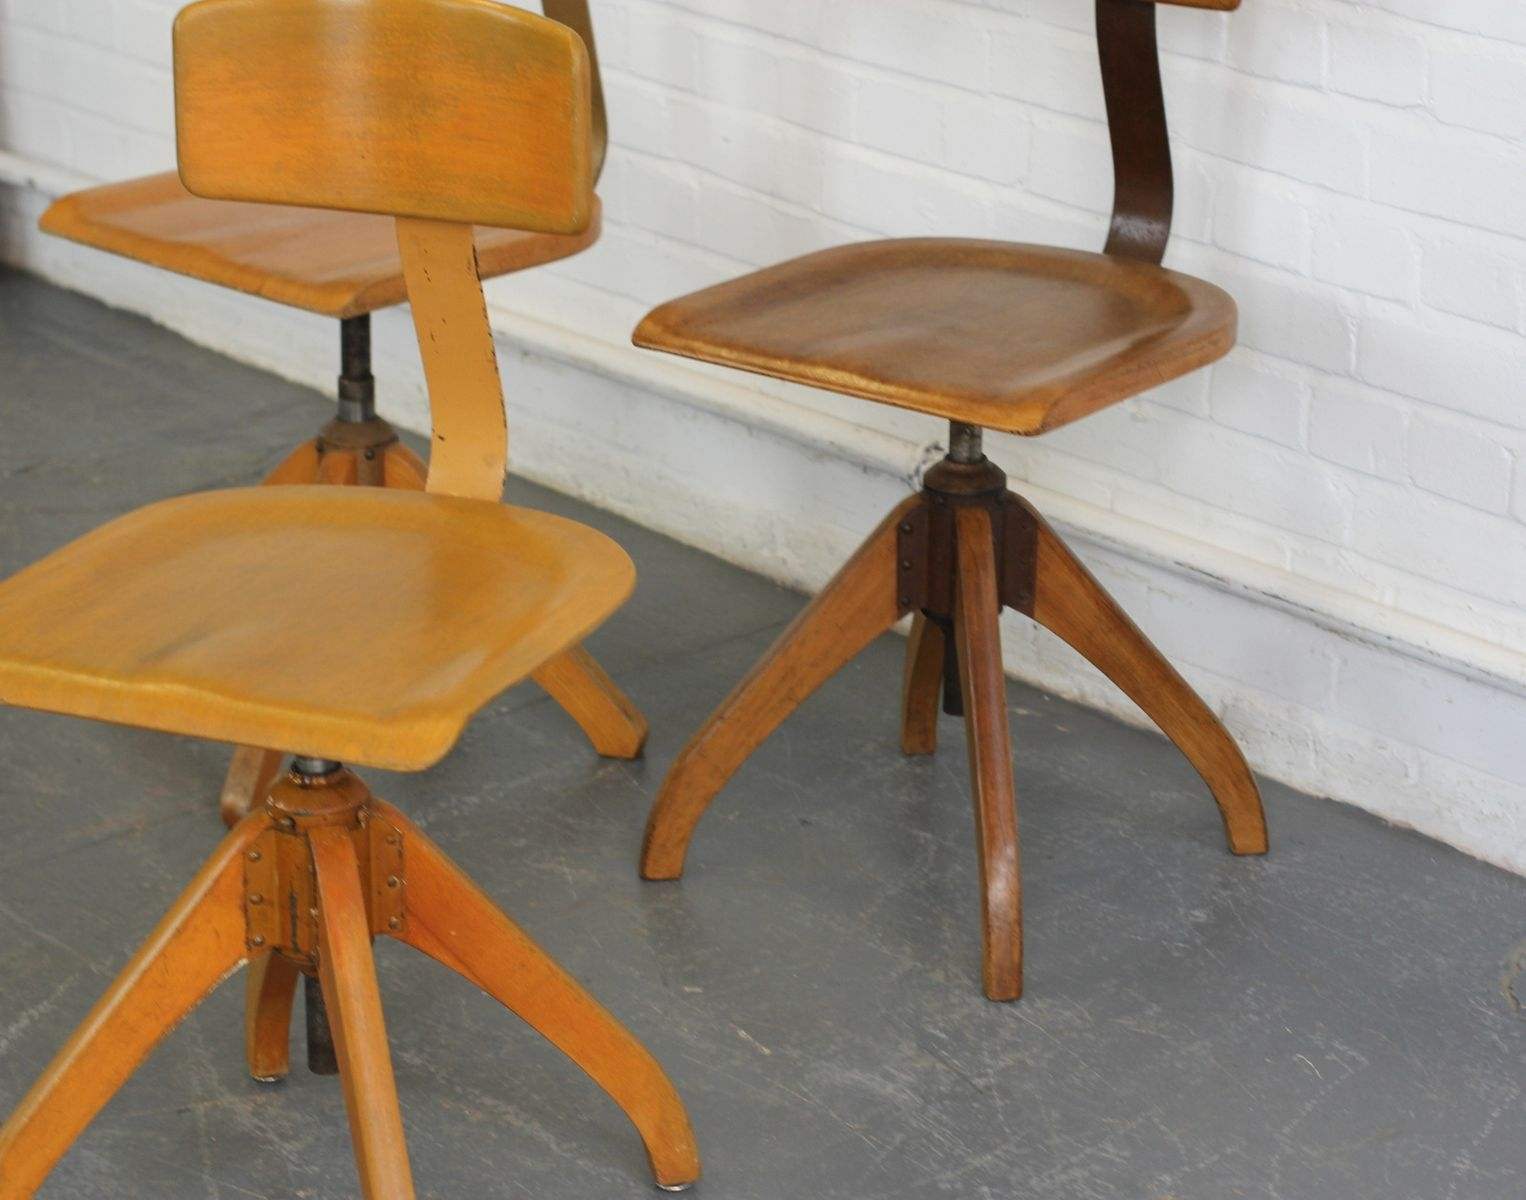 Newest Amos Side Chairs Pertaining To Machinist Chair From Ama Elastik, 1930s For Sale At Pamono (View 7 of 20)